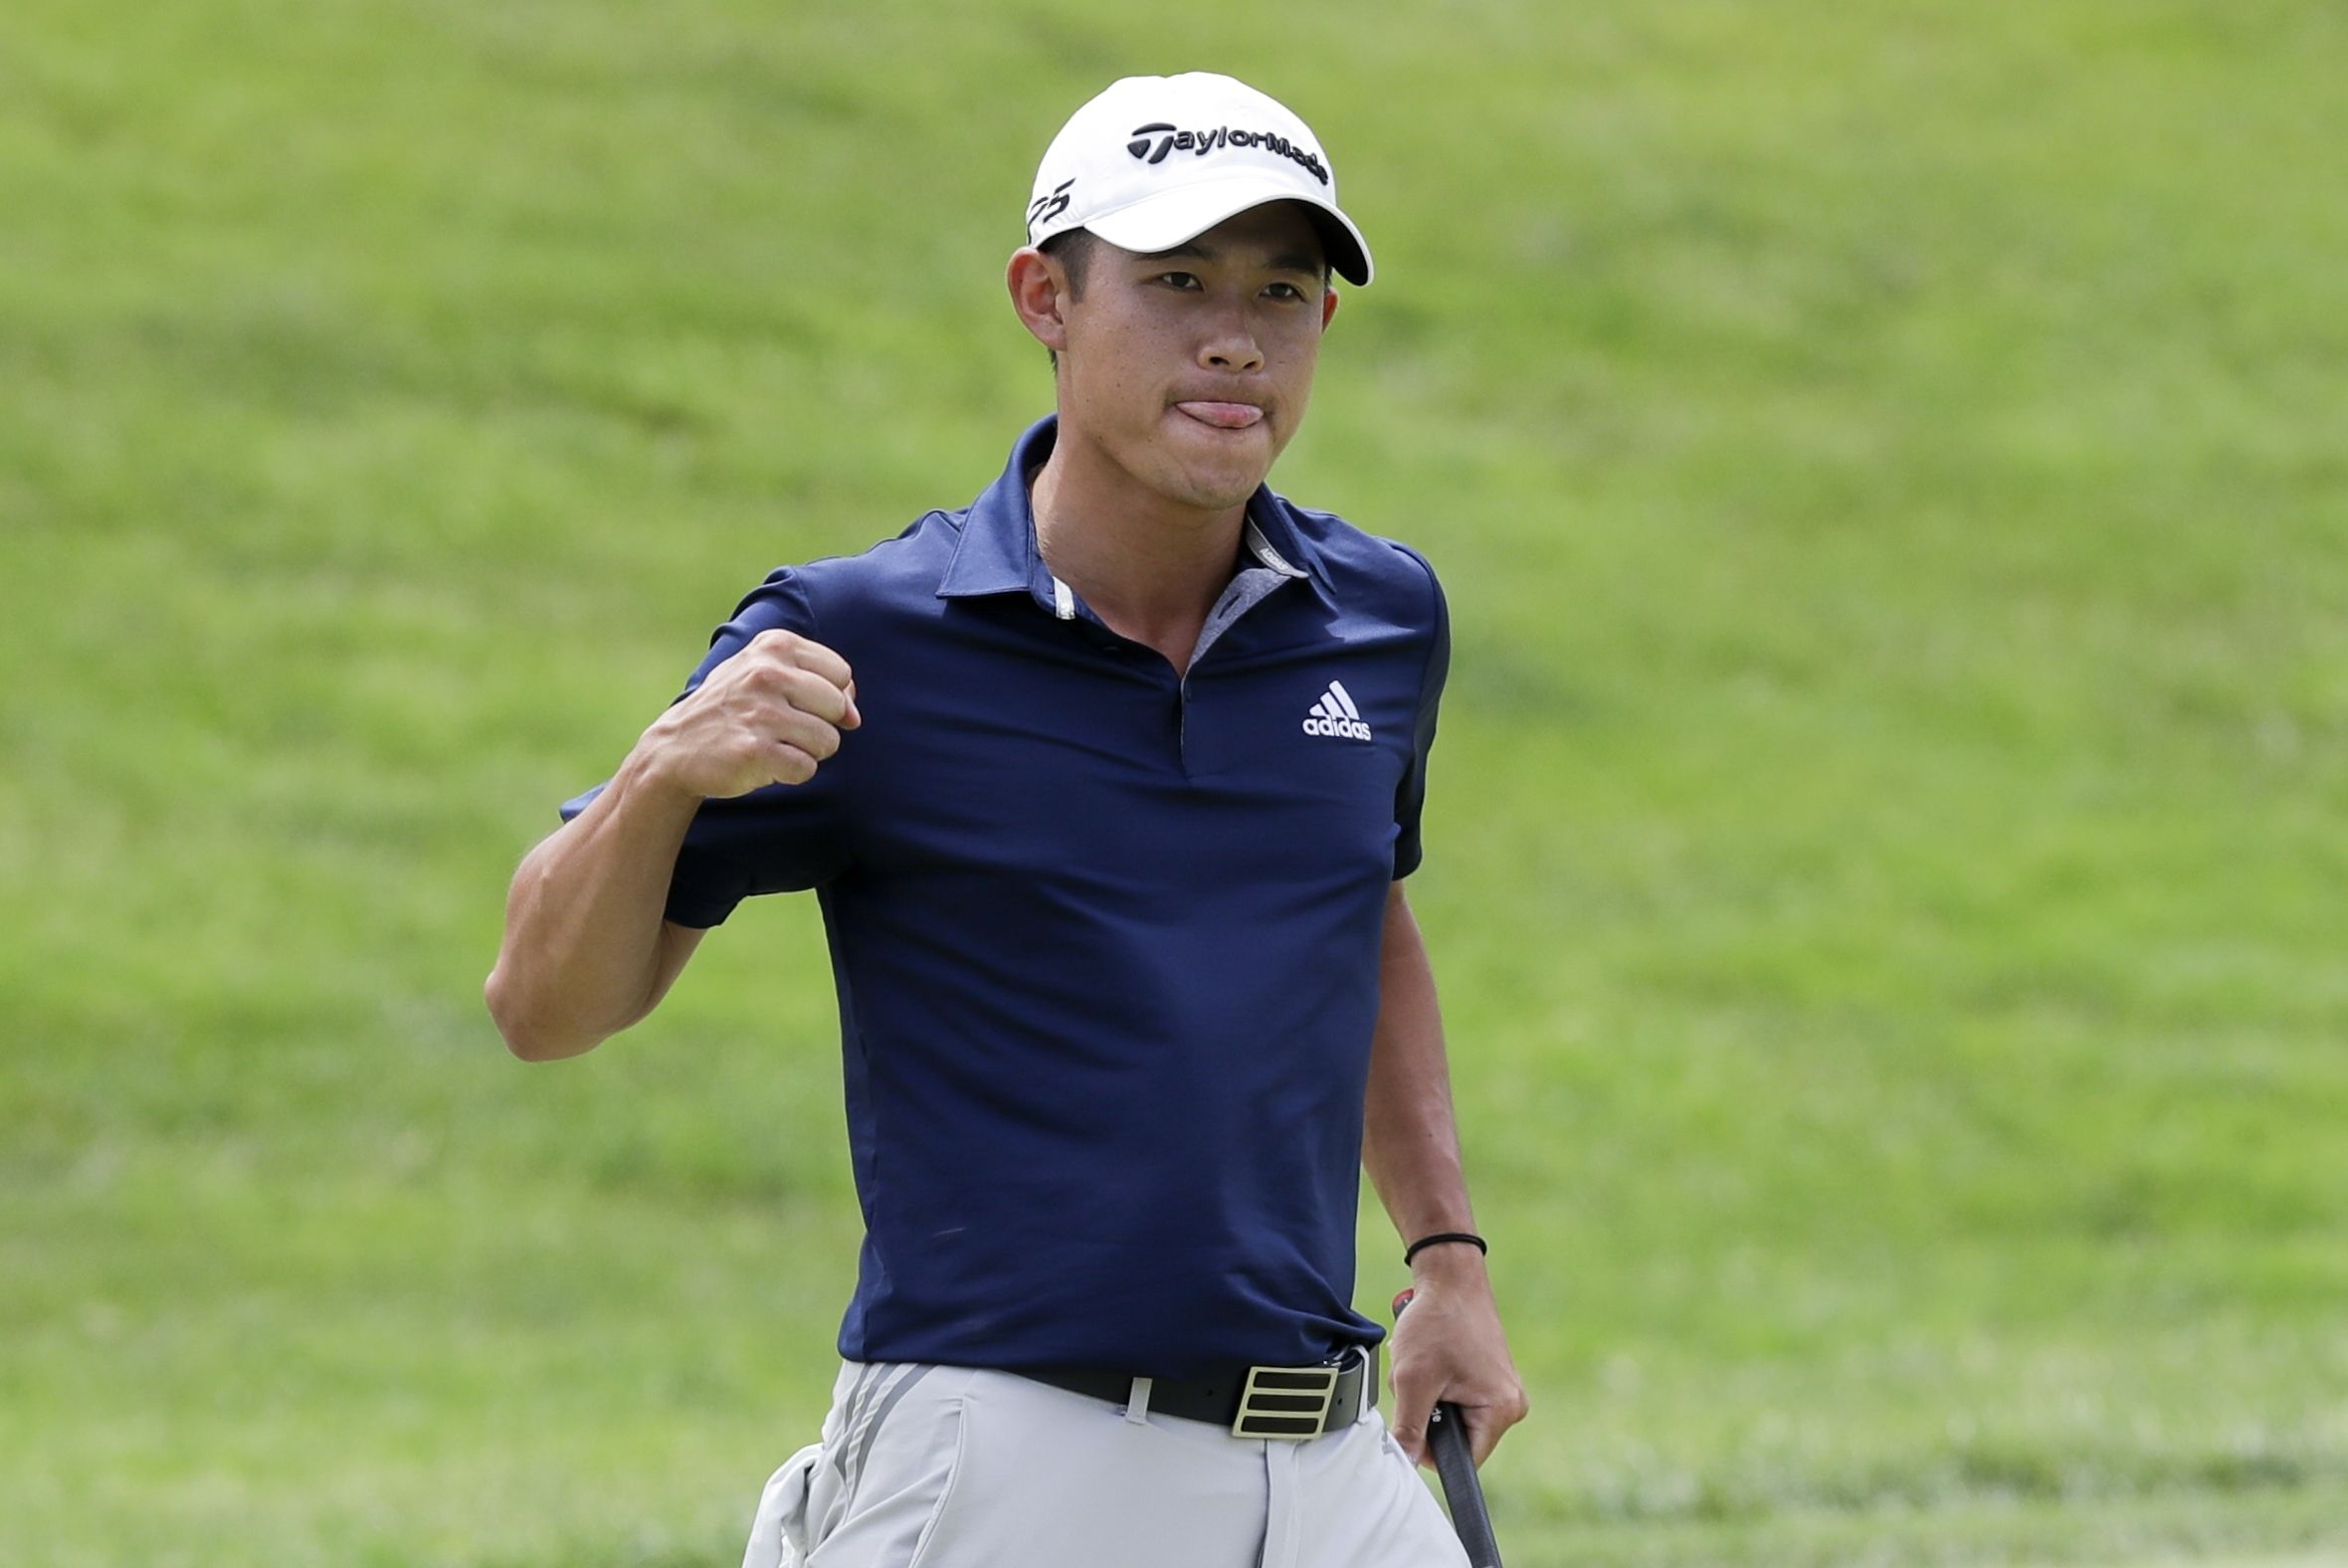 Collin Morikawa Answers Three Shot Deficit 50 Footer To Win In Playoff At Muirfield The Boston Globe